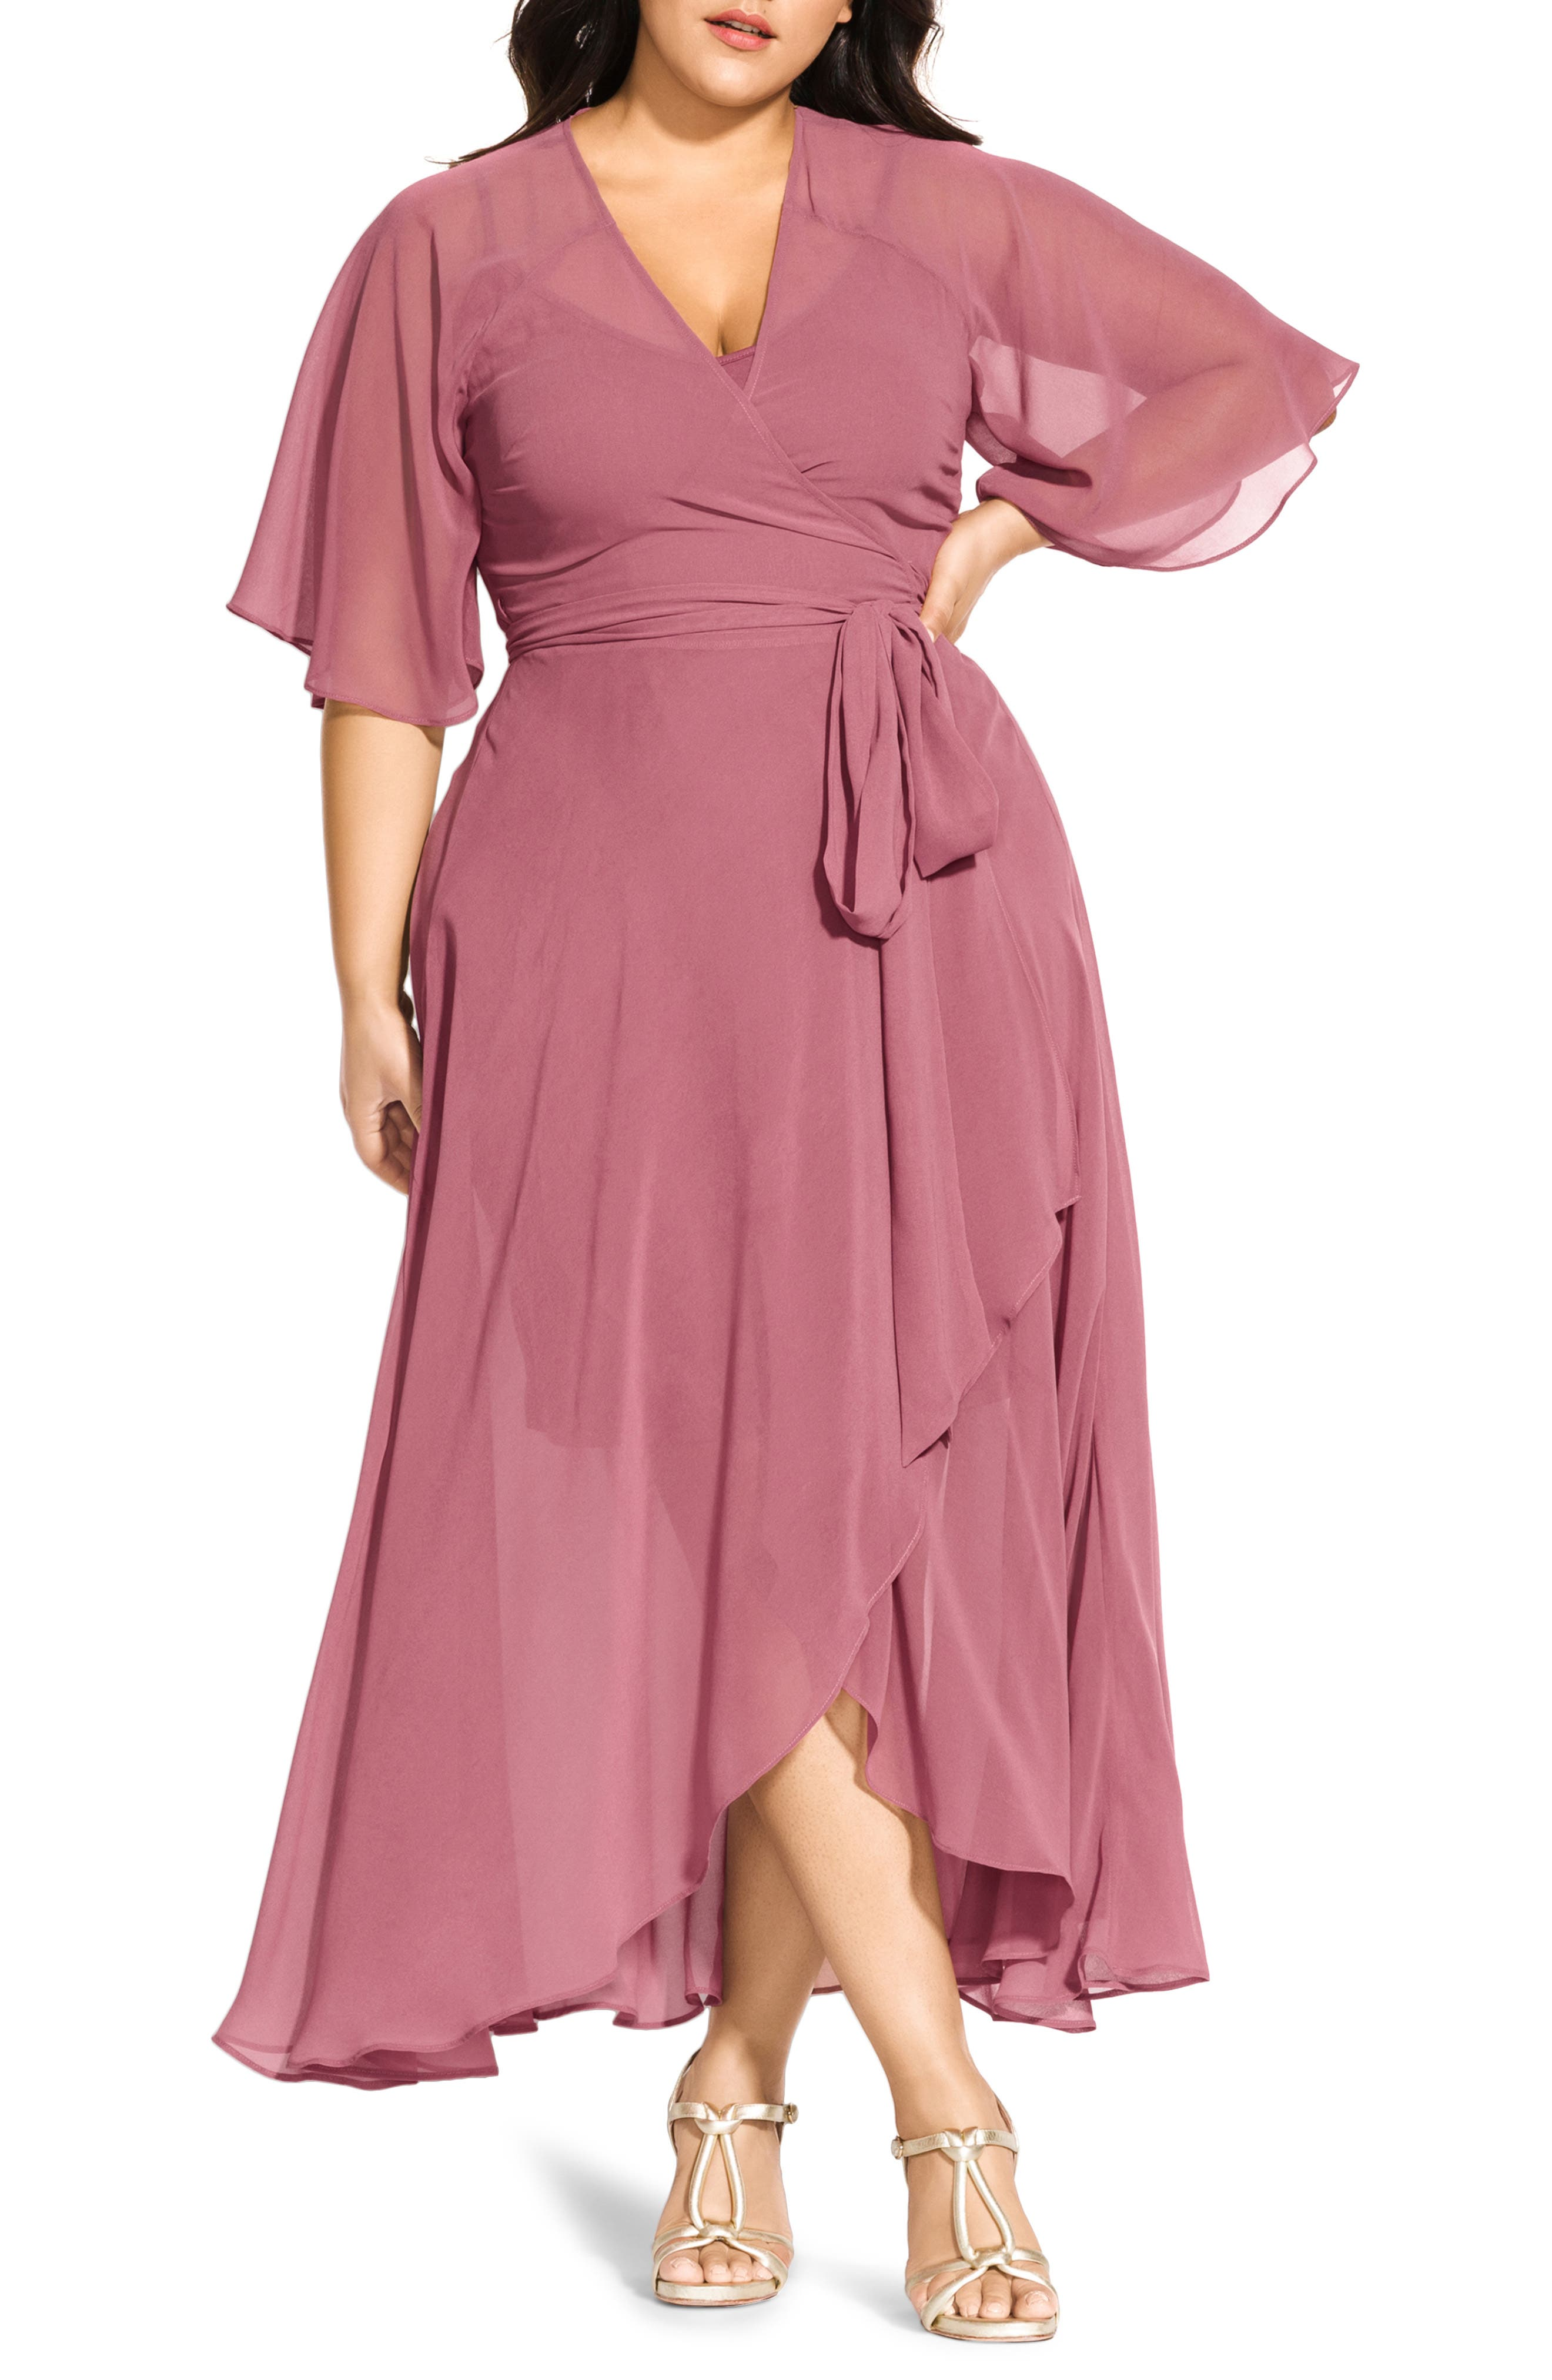 City Chic Enthrall Me High/Low Dress (Plus Size)